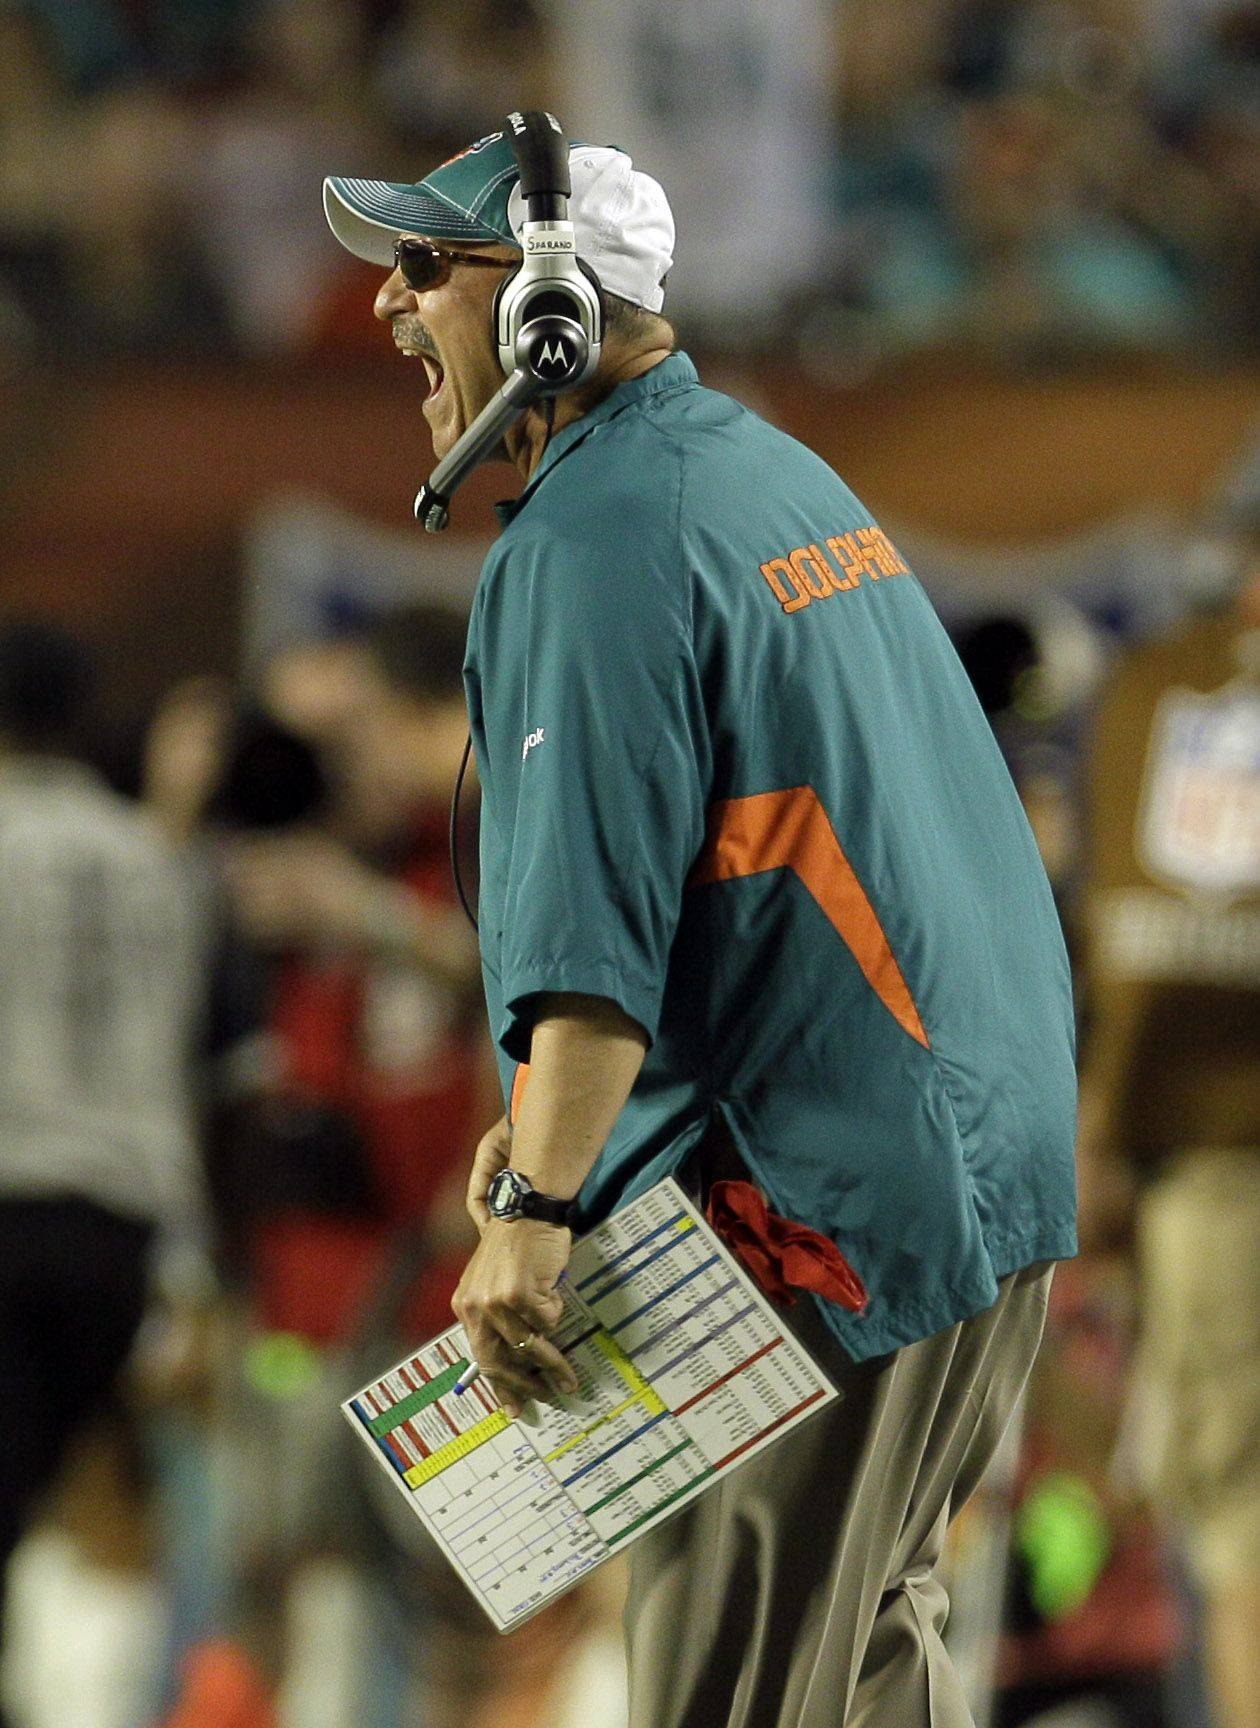 Miami Dolphins head coach Tony Sparano yells from the sidelines during an NFL football game against the Chicago Bears.